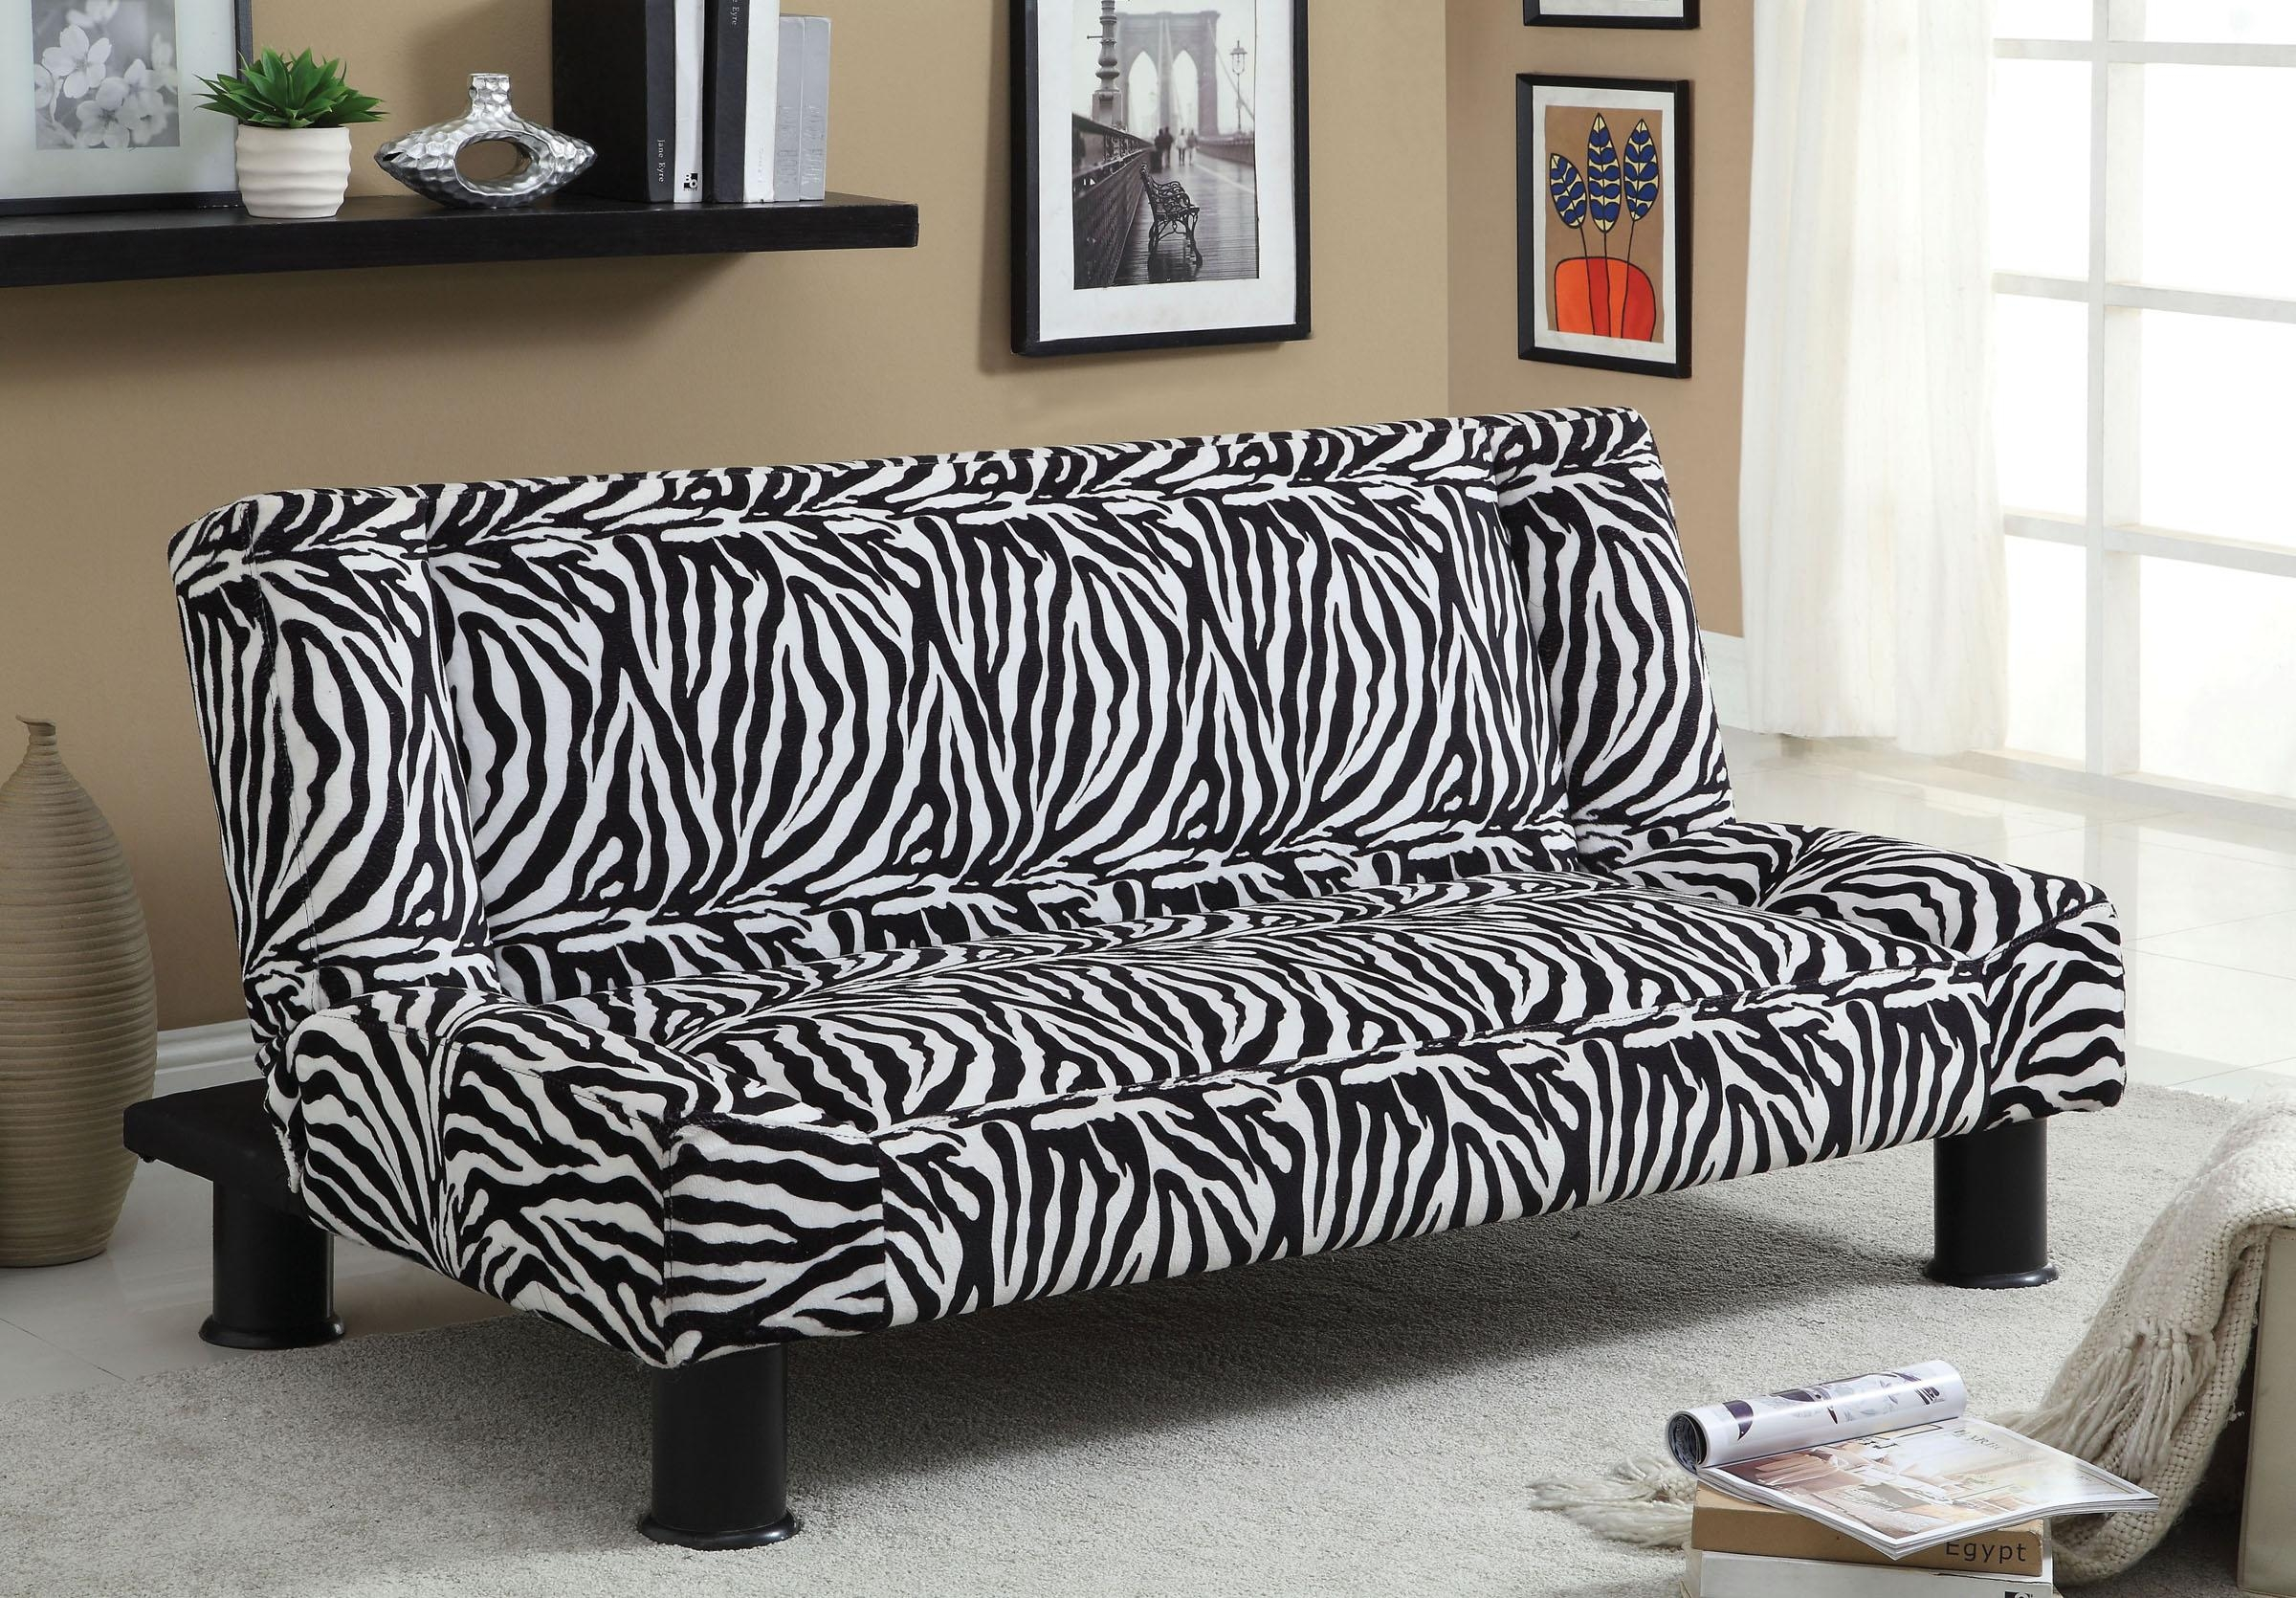 Zebra Print Fabric Sofa Bed Futon in Animal Print Sofas